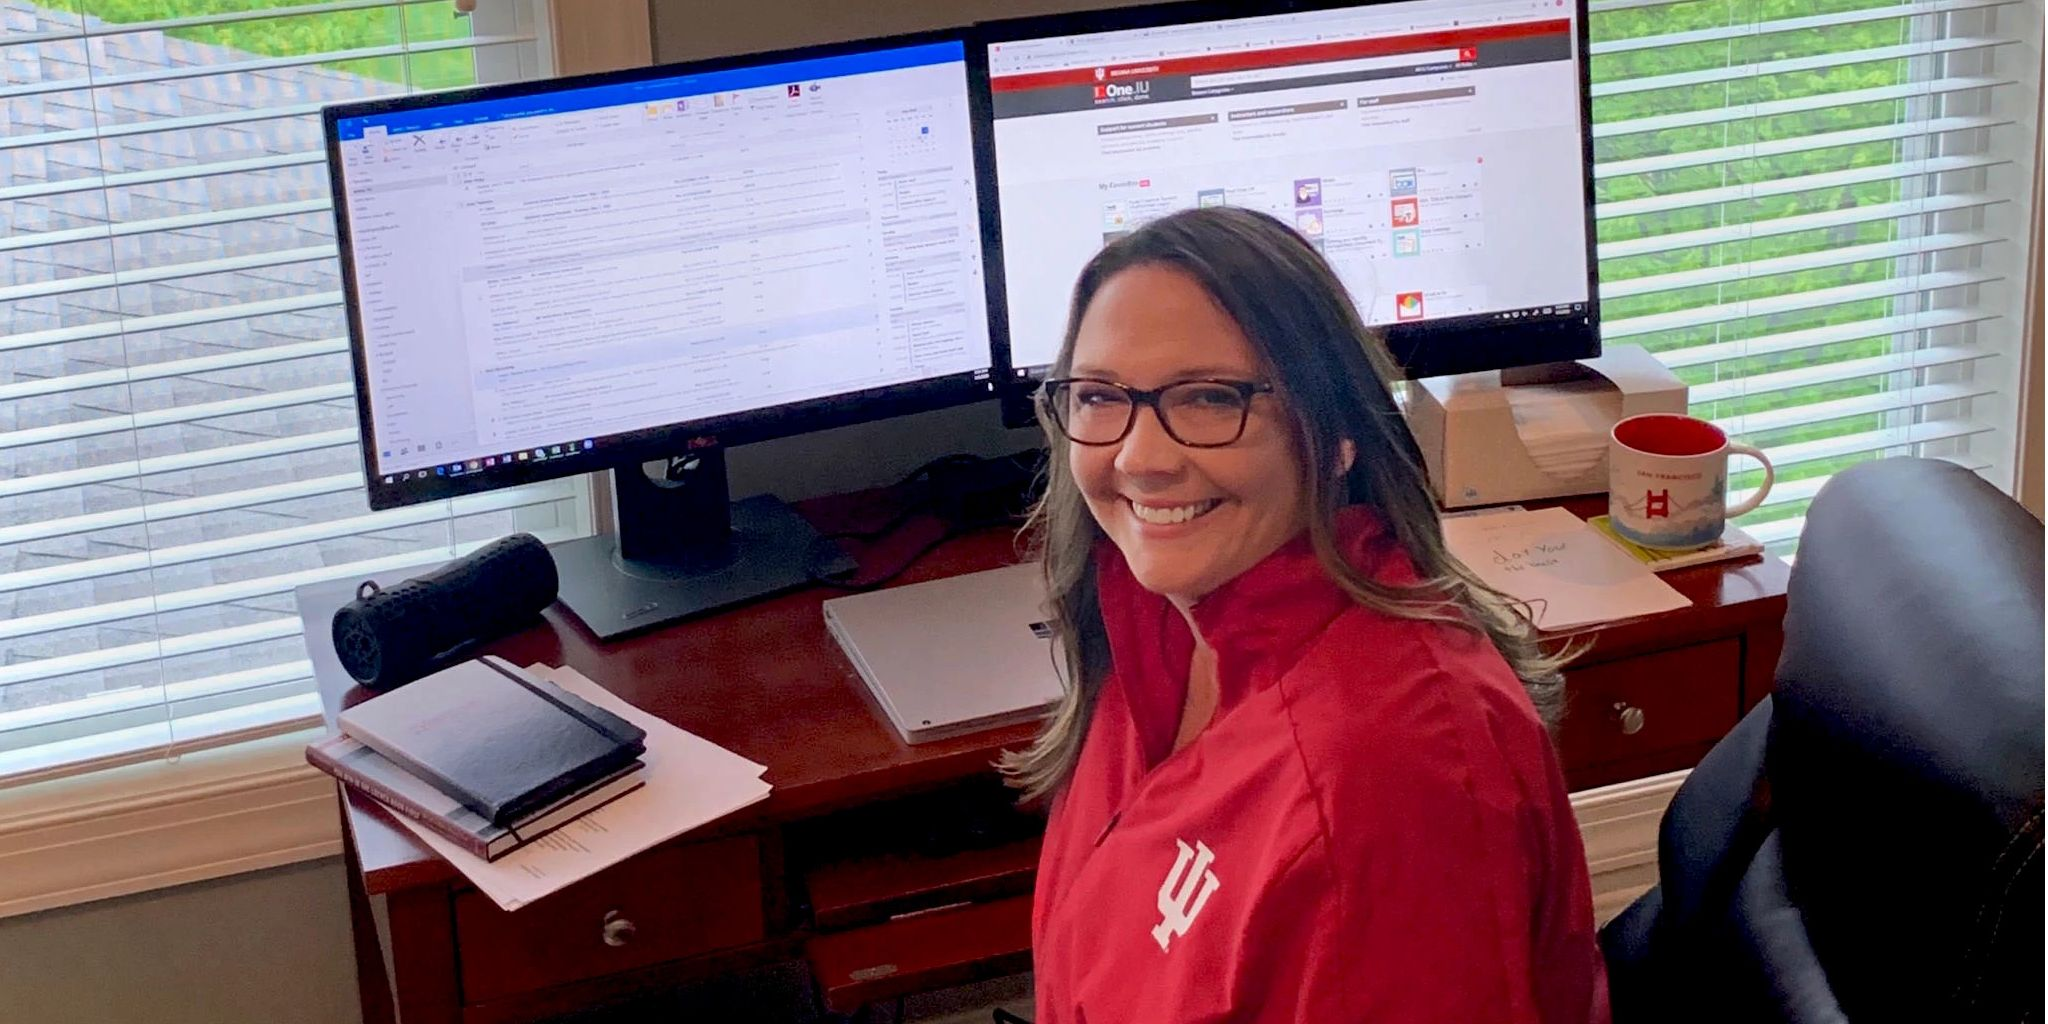 A woman wearing a red IU jacket sits at a computer desk in her home.